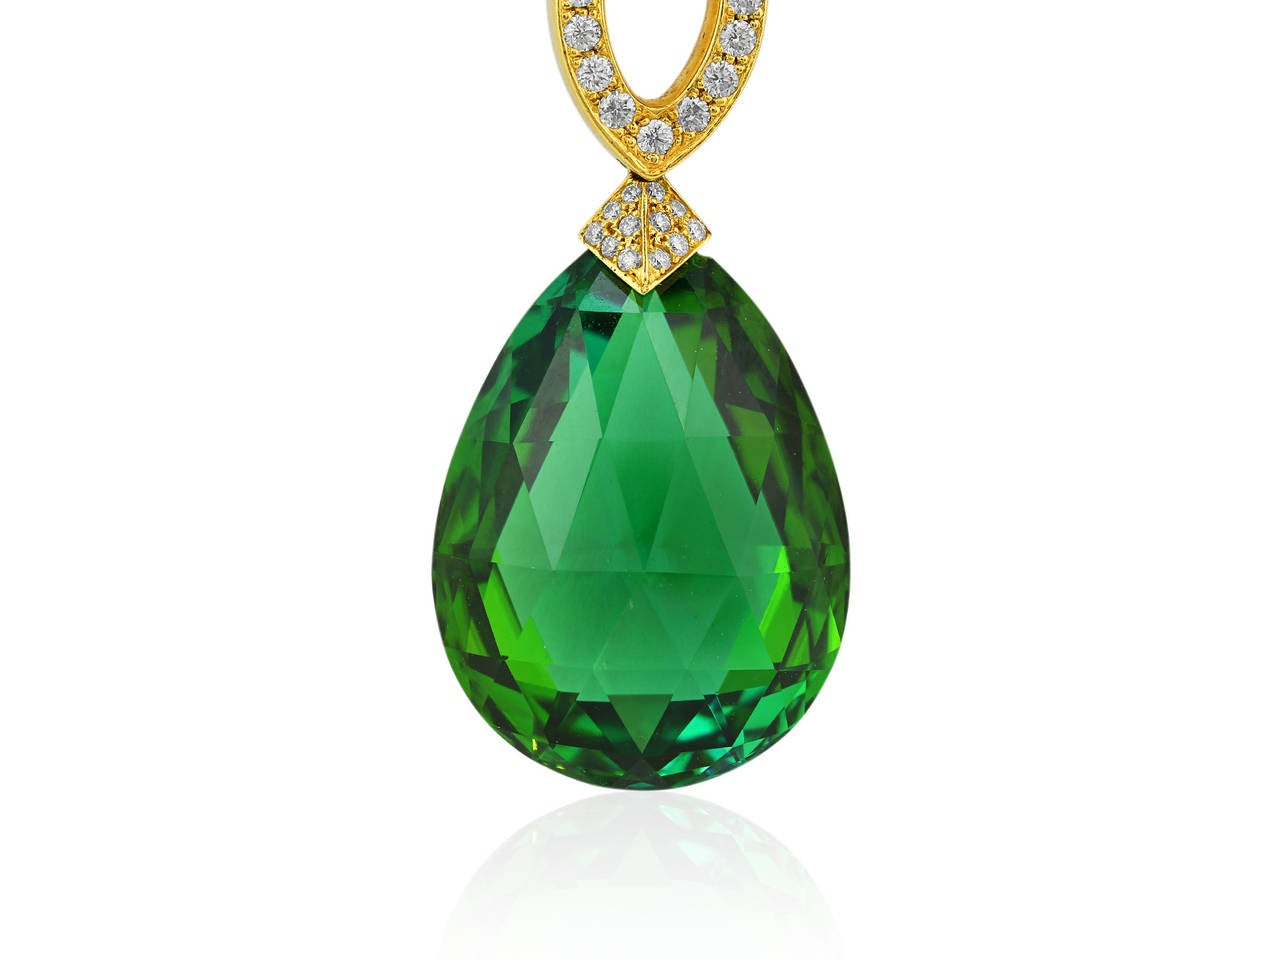 18 karat yellow gold estate necklace consisting of one briolette cut green tourmaline weighing approximately 30 carats set with approximately 1.25 carats of round brilliant cut diamond accents, the necklace is signed Mimi So